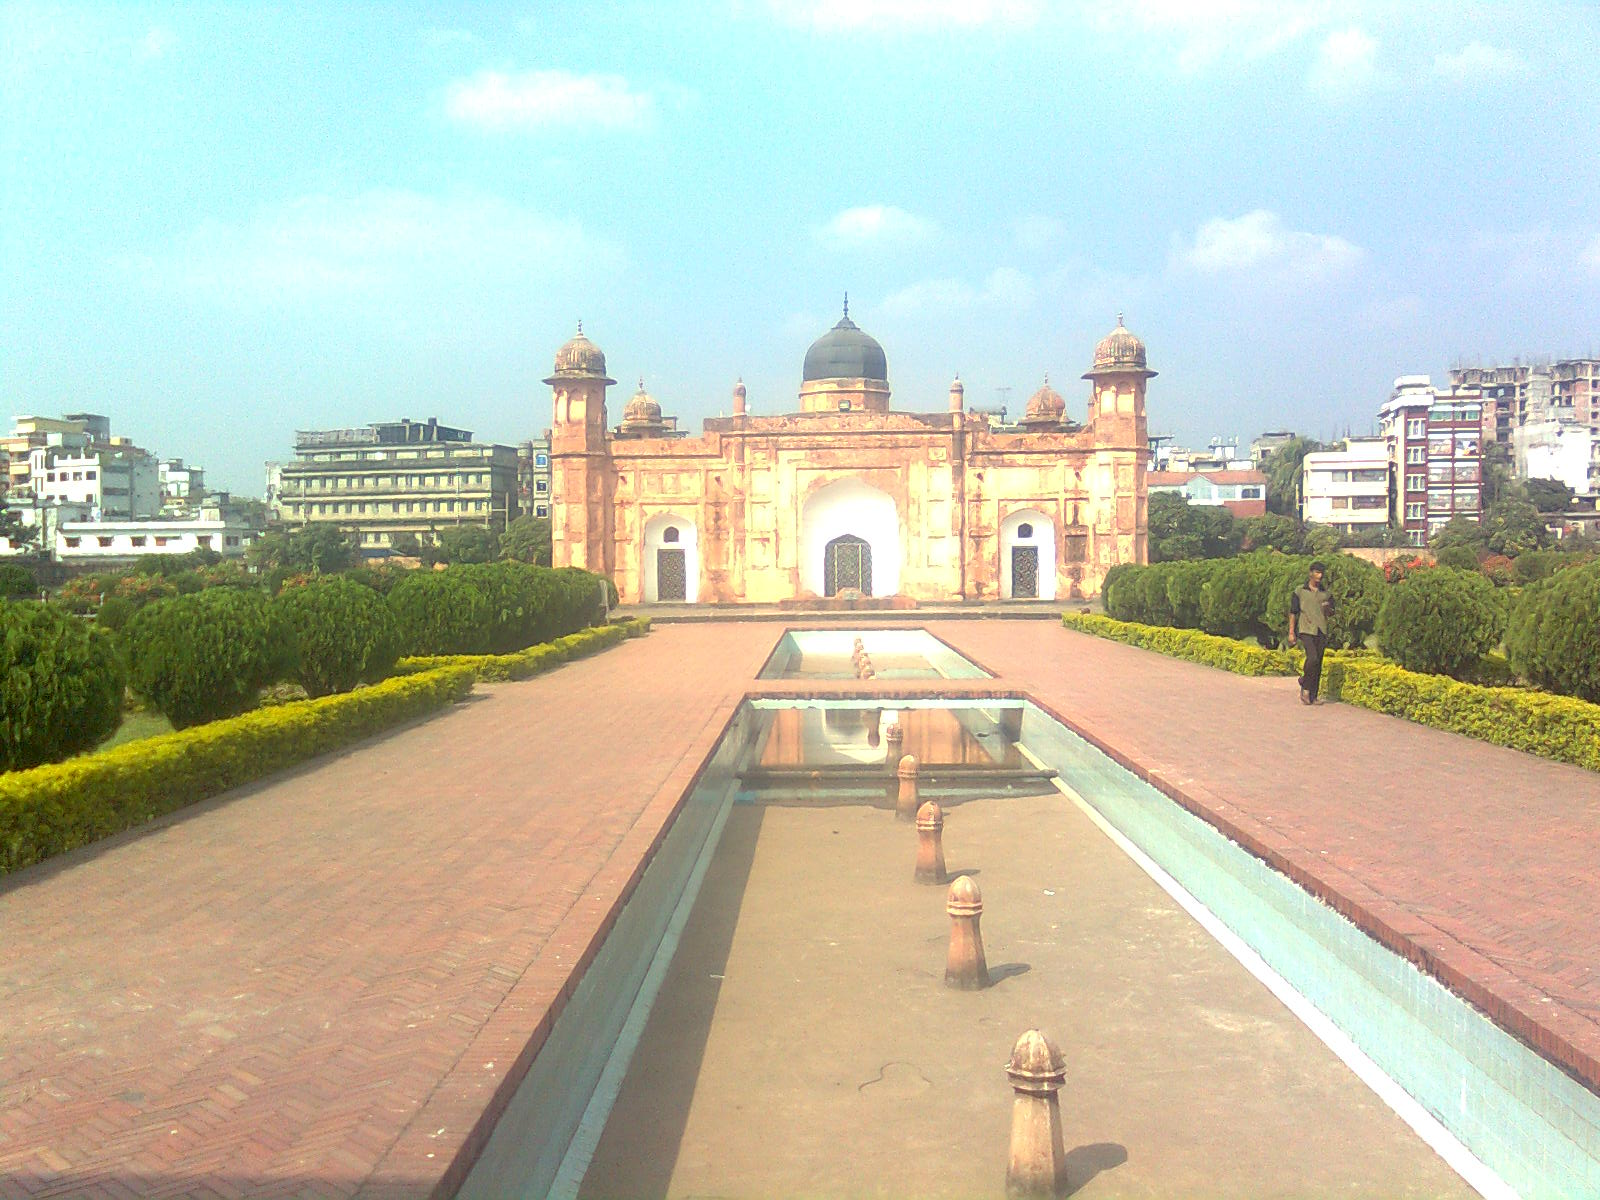 lalbagh fort tourism Lalbag fort: lalbagh fort - see 657 traveller reviews, 563 candid photos, and great deals for dhaka city, bangladesh, at tripadvisor.